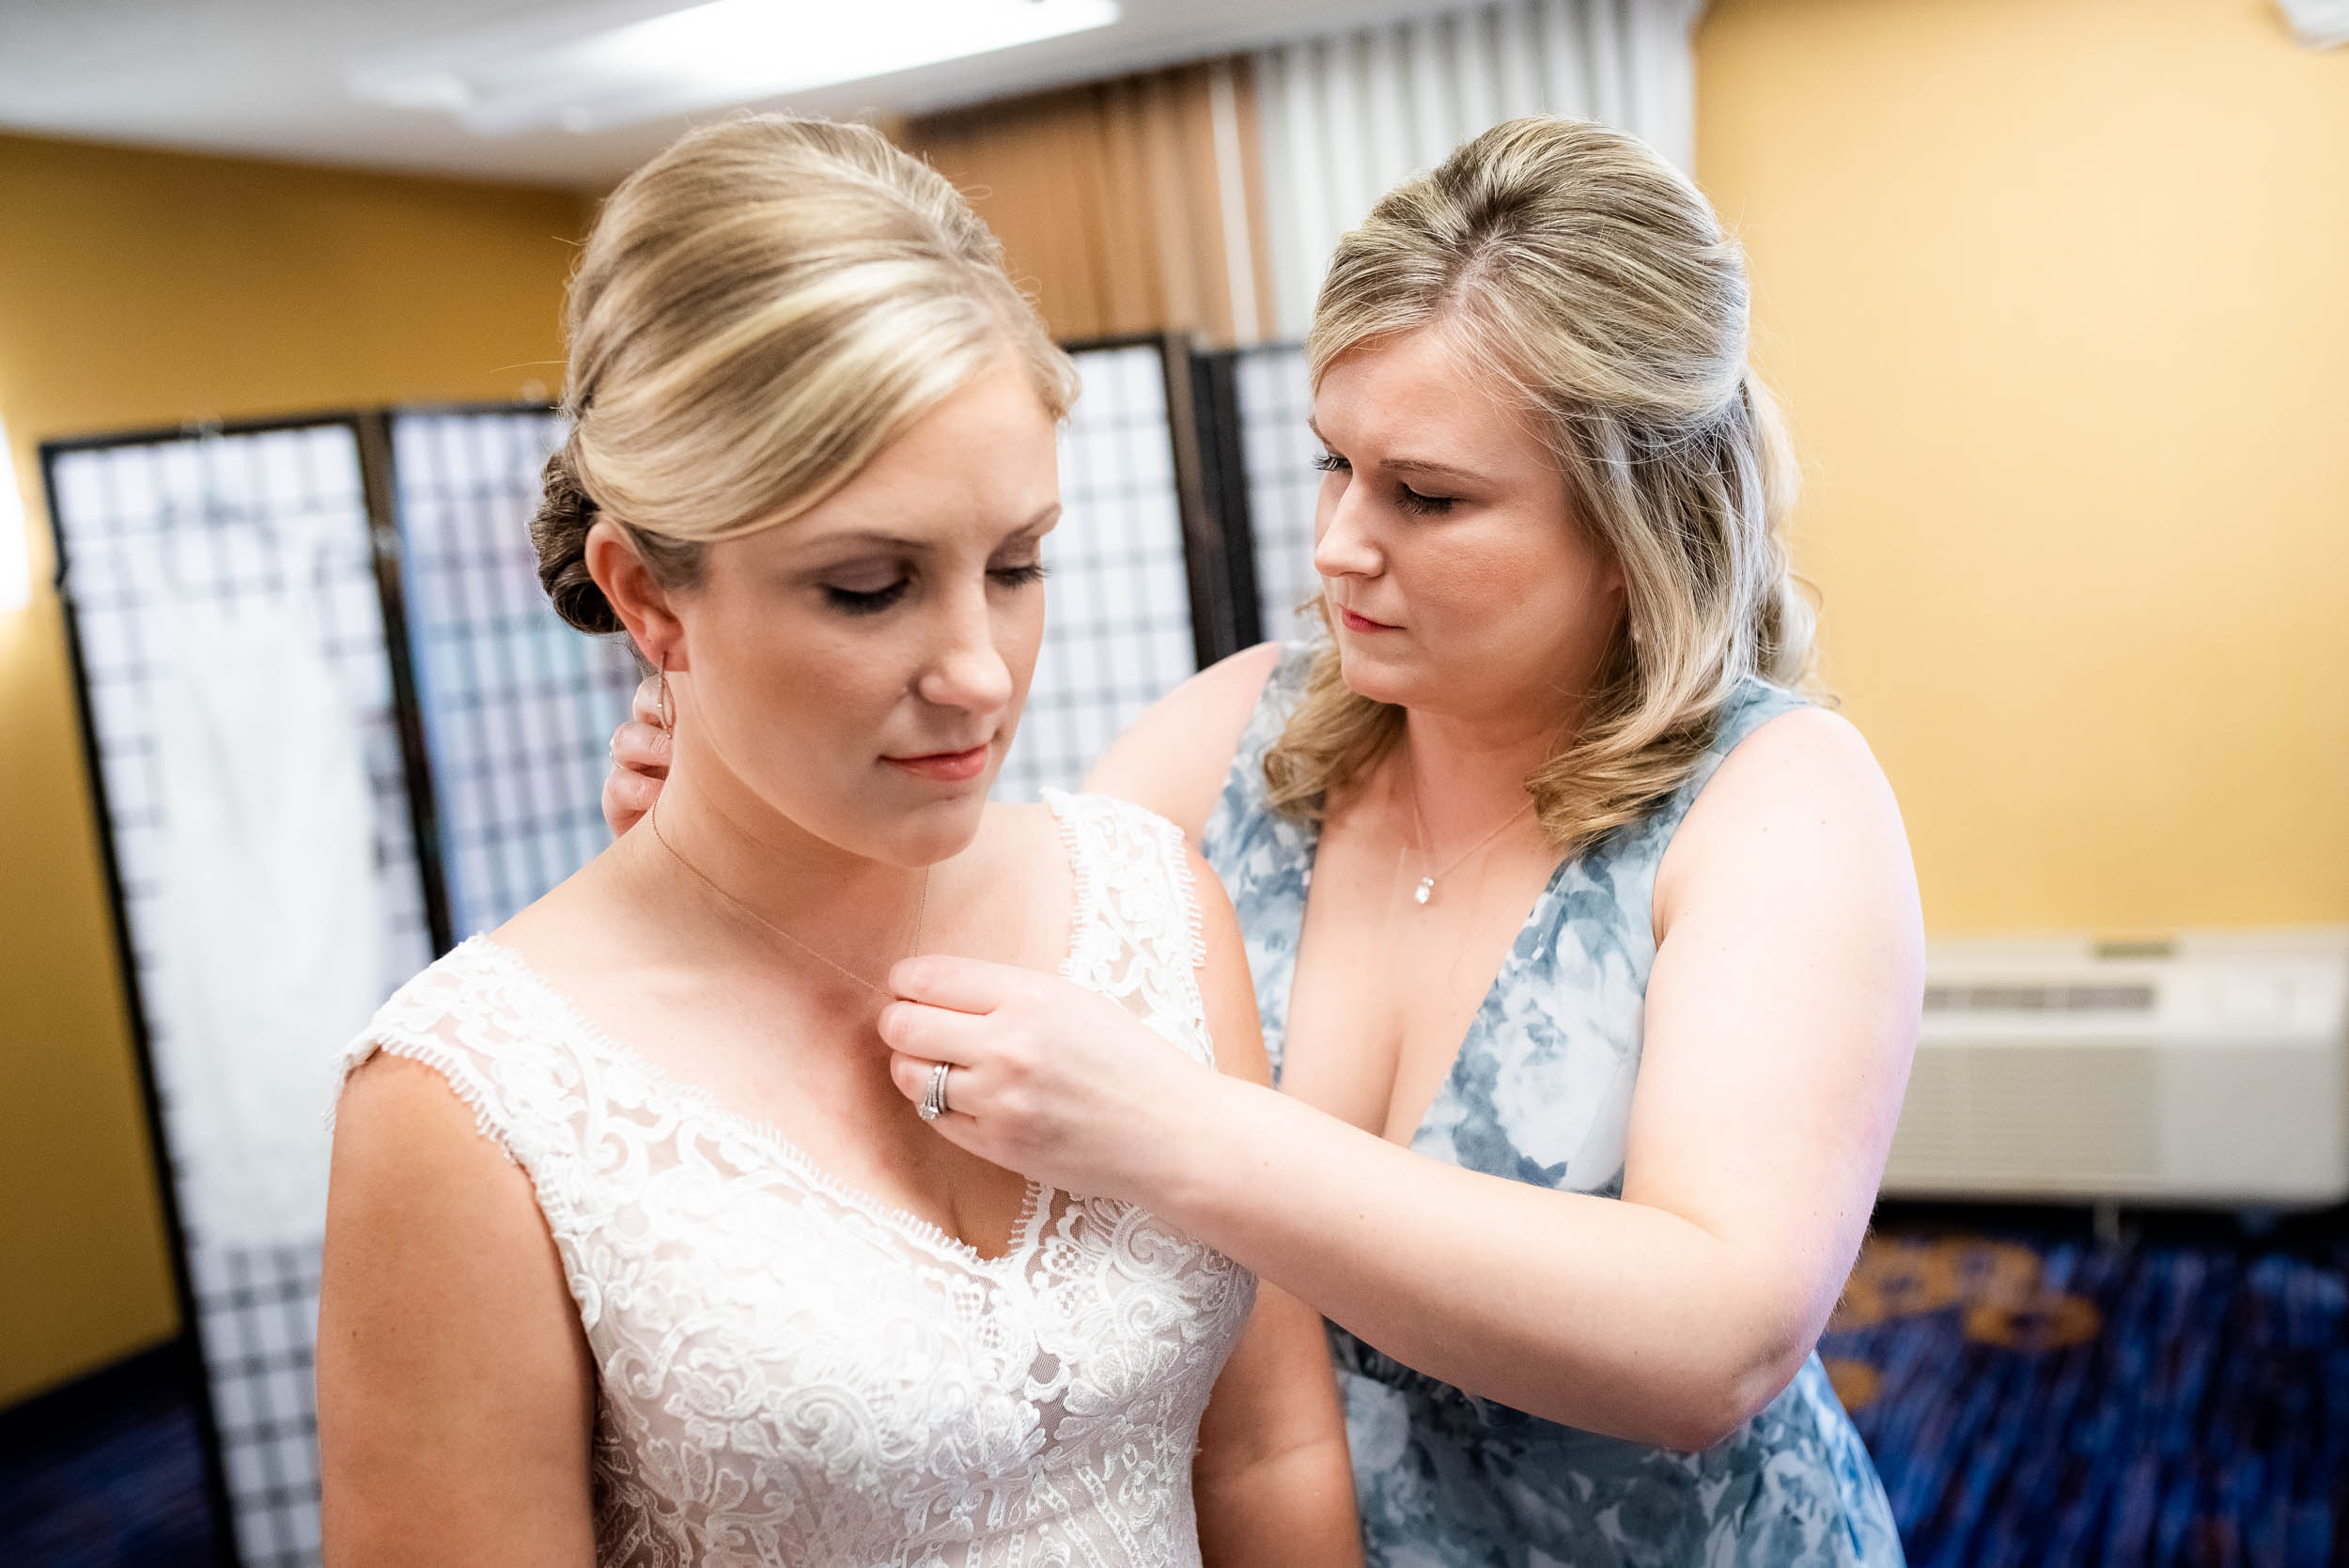 Bride getting ready: Modern industrial Chicago wedding inside Prairie Street Brewhouse captured by J. Brown Photography. Find more wedding ideas at jbrownphotography.com!